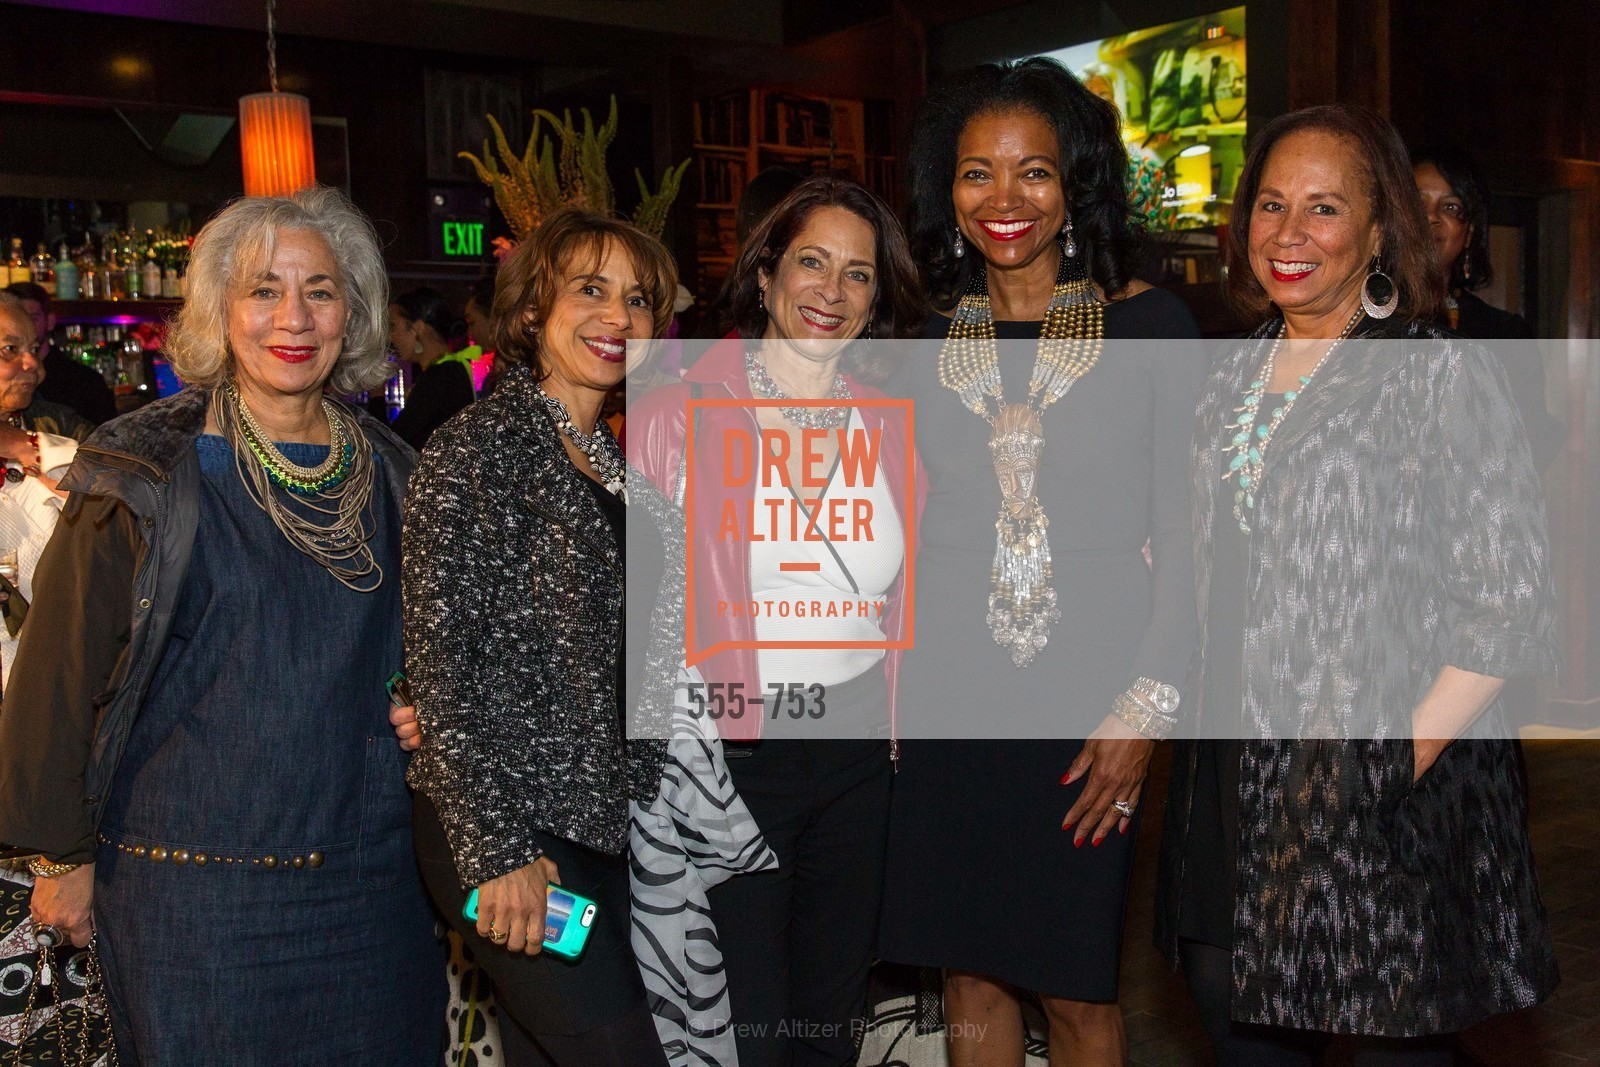 Peggy Forbes, Carla Foster, Sylvia Mestayer-Collins, Denise Bradley Tyson, Schyleen Qualls, INSPIRED LUXE Launch Party Hosted by Denise Bradley Tyson, US, Matrix Fillmore, May 28th, 2015,Drew Altizer, Drew Altizer Photography, full-service agency, private events, San Francisco photographer, photographer california